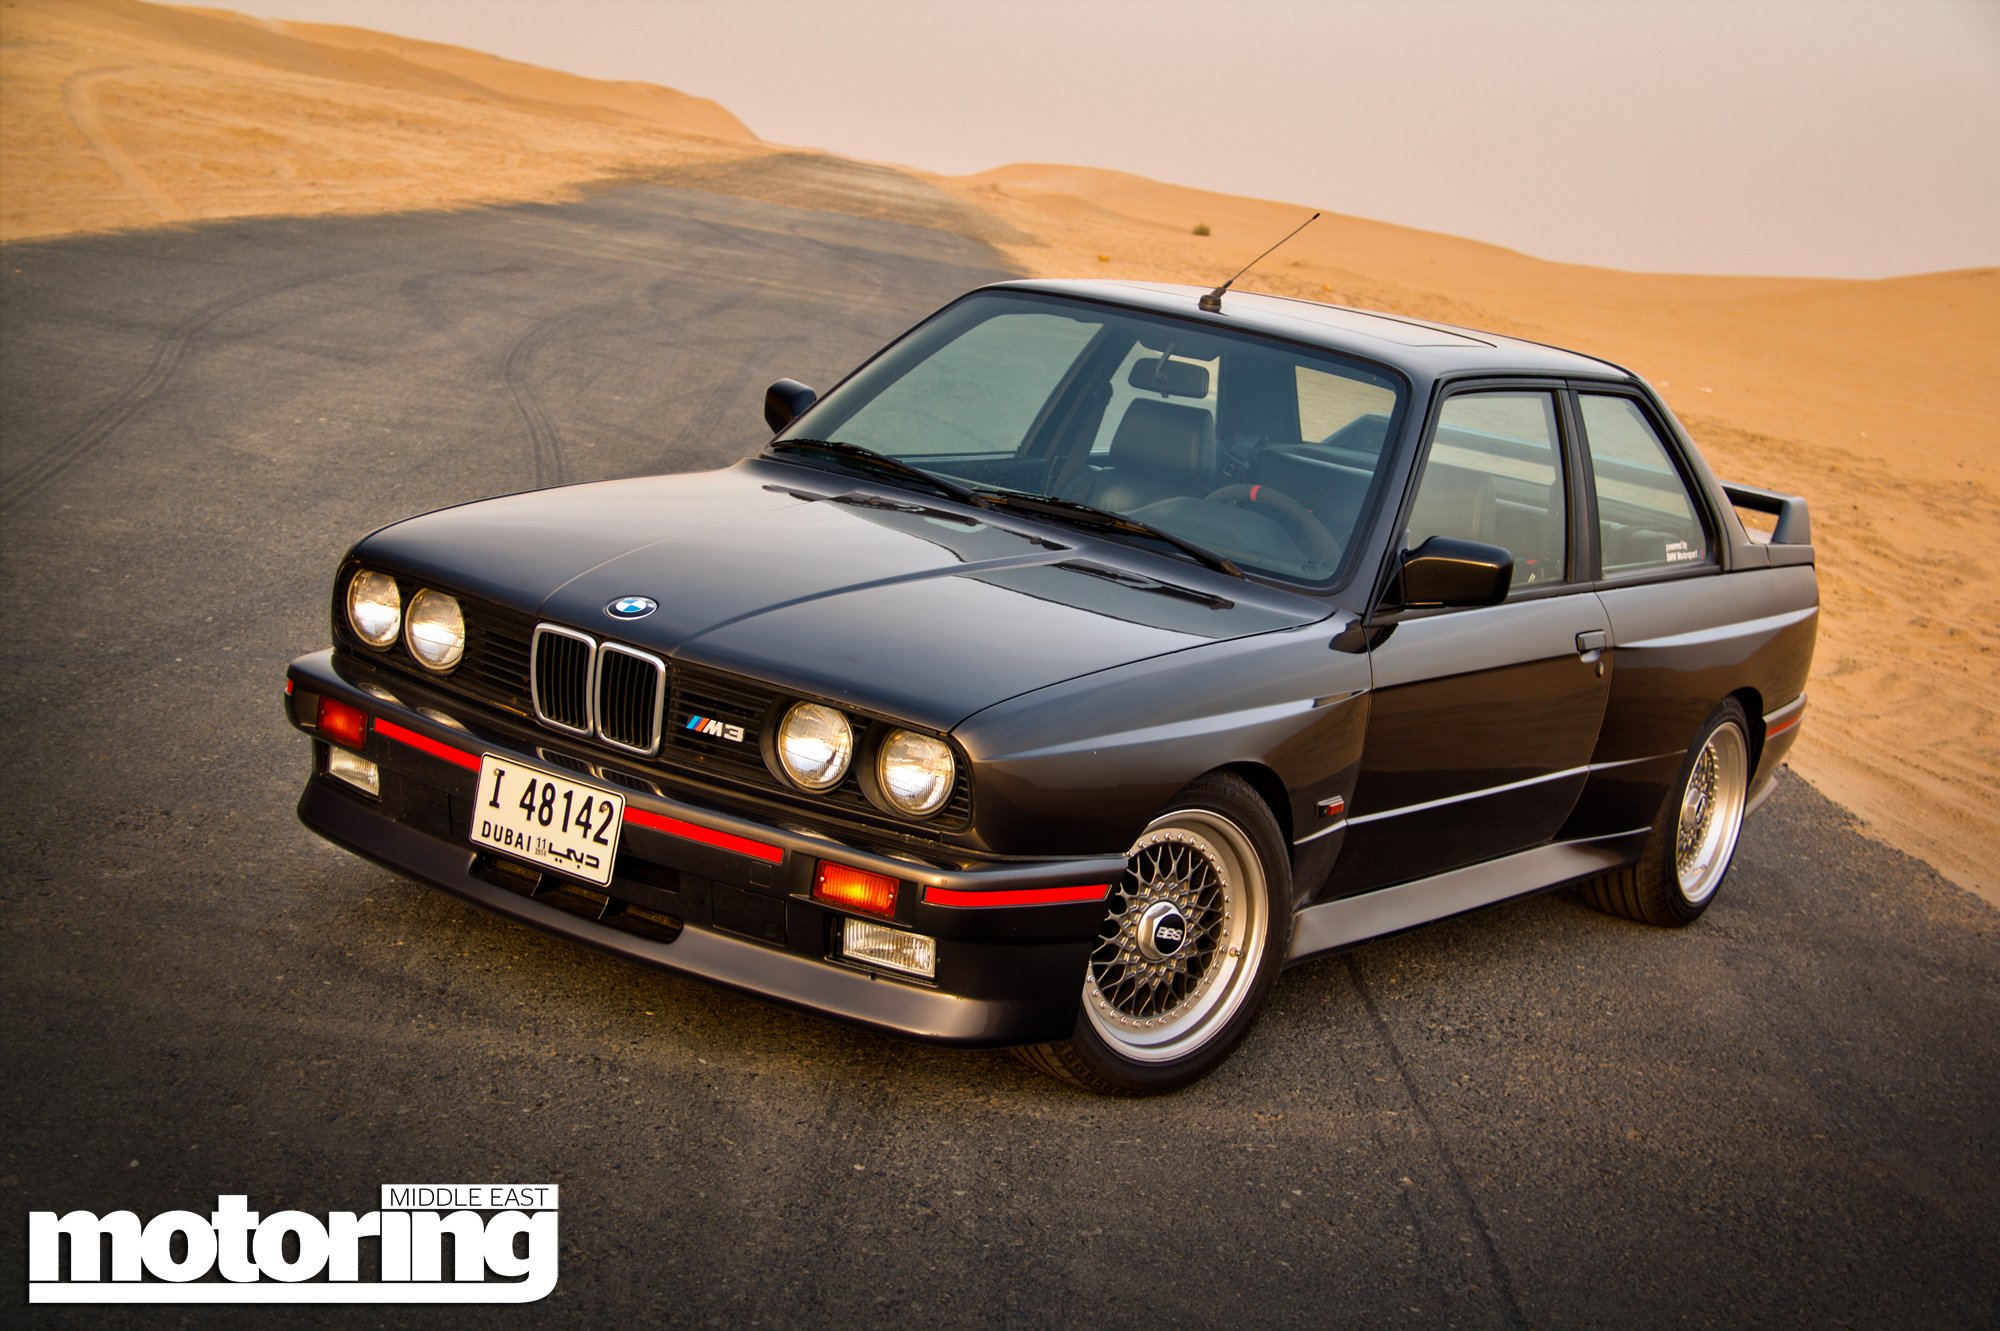 1987 bmw e30 m3 driven in dubai video motoring middle. Black Bedroom Furniture Sets. Home Design Ideas